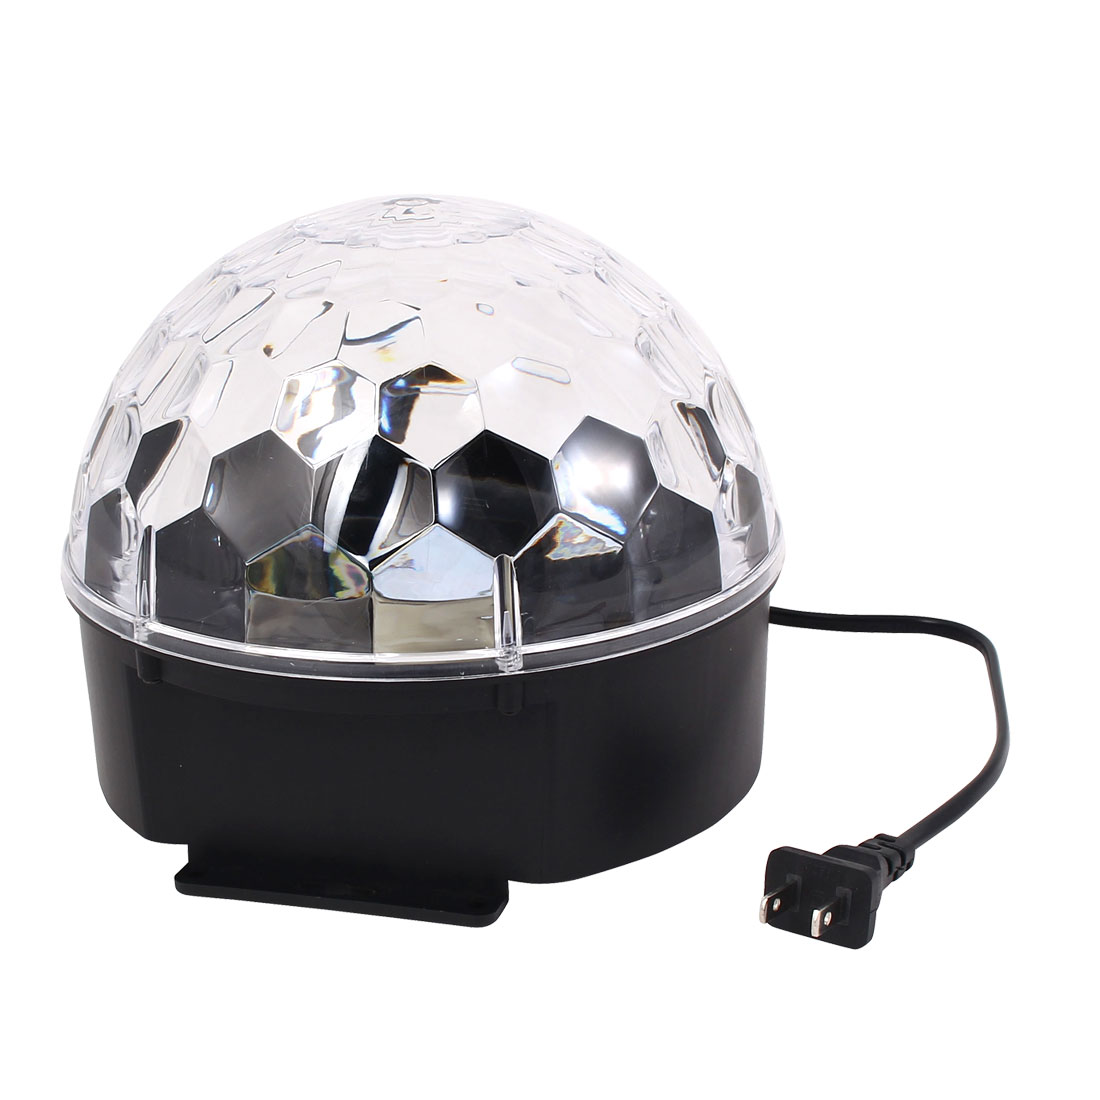 AC100V-240V US Plug Disco Lighting RGB Crystal LED Magic Ball Light Digital Lamp by Unique-Bargains